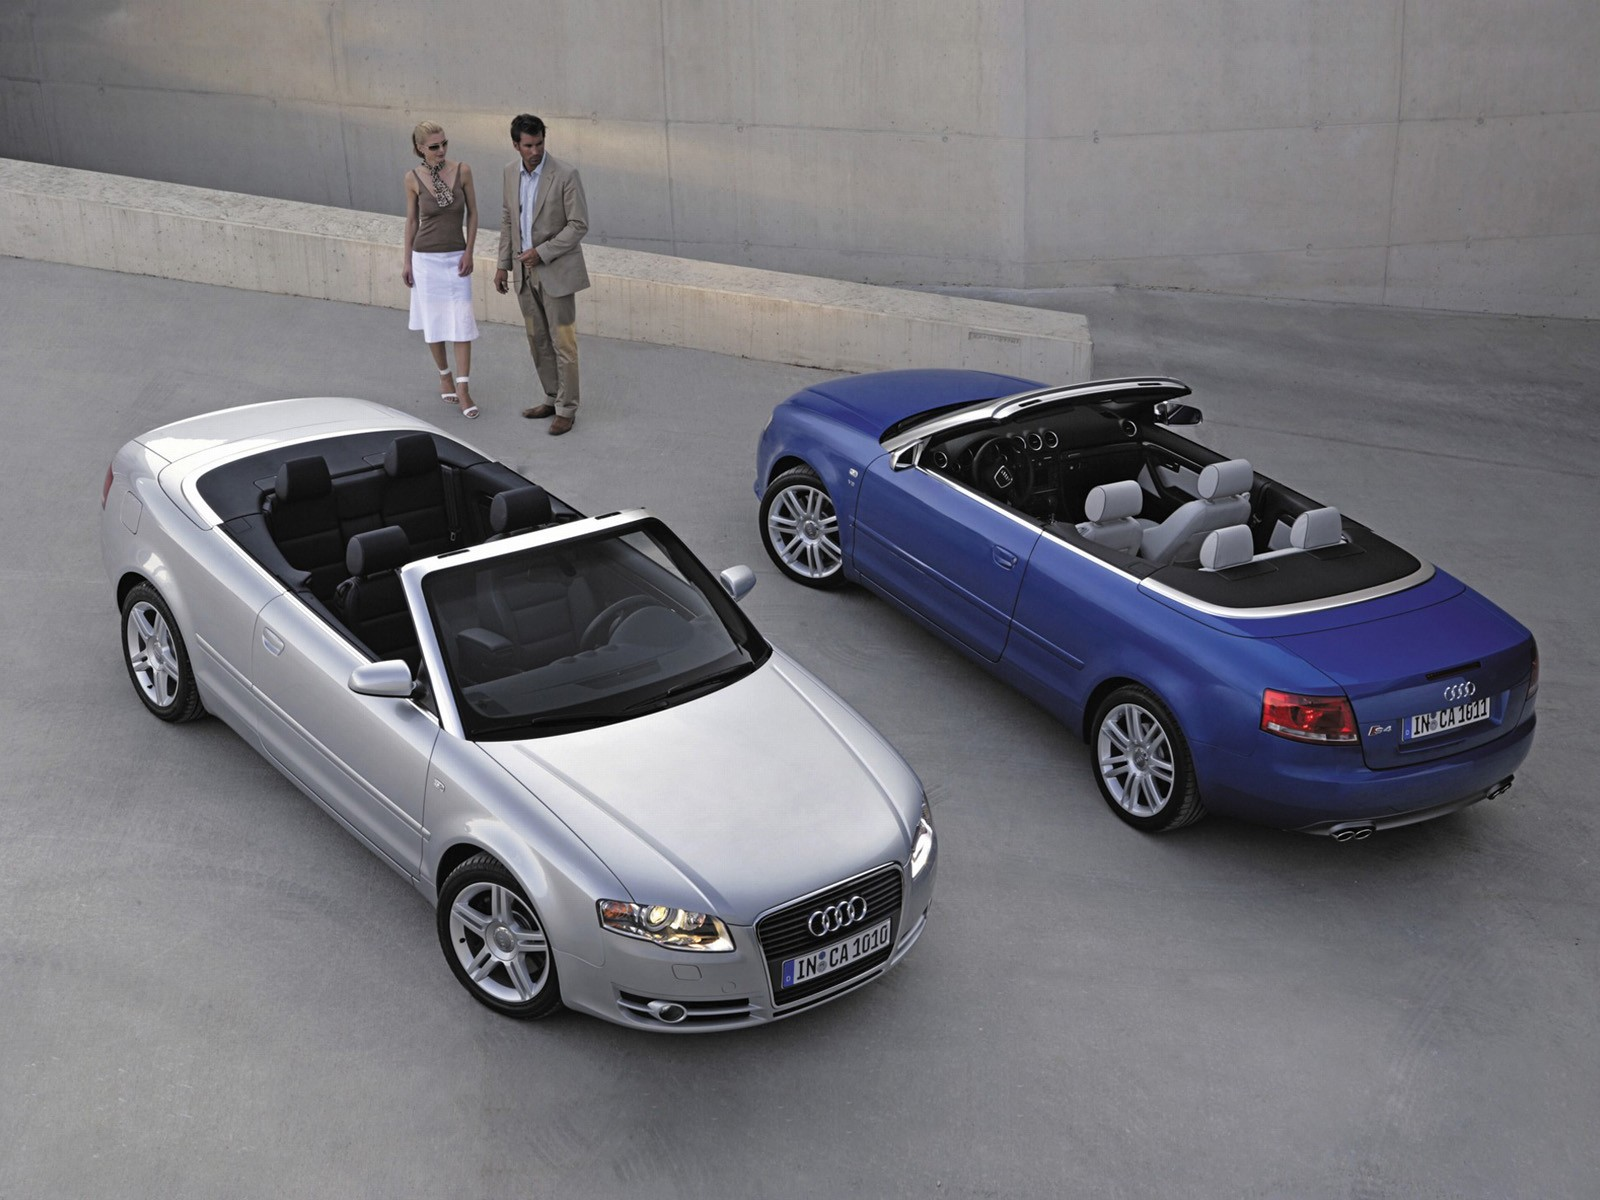 Audi A4 Coupe Audi Rumored To Debut A1 Cabriolet In 2019 A4 Coupe And A4